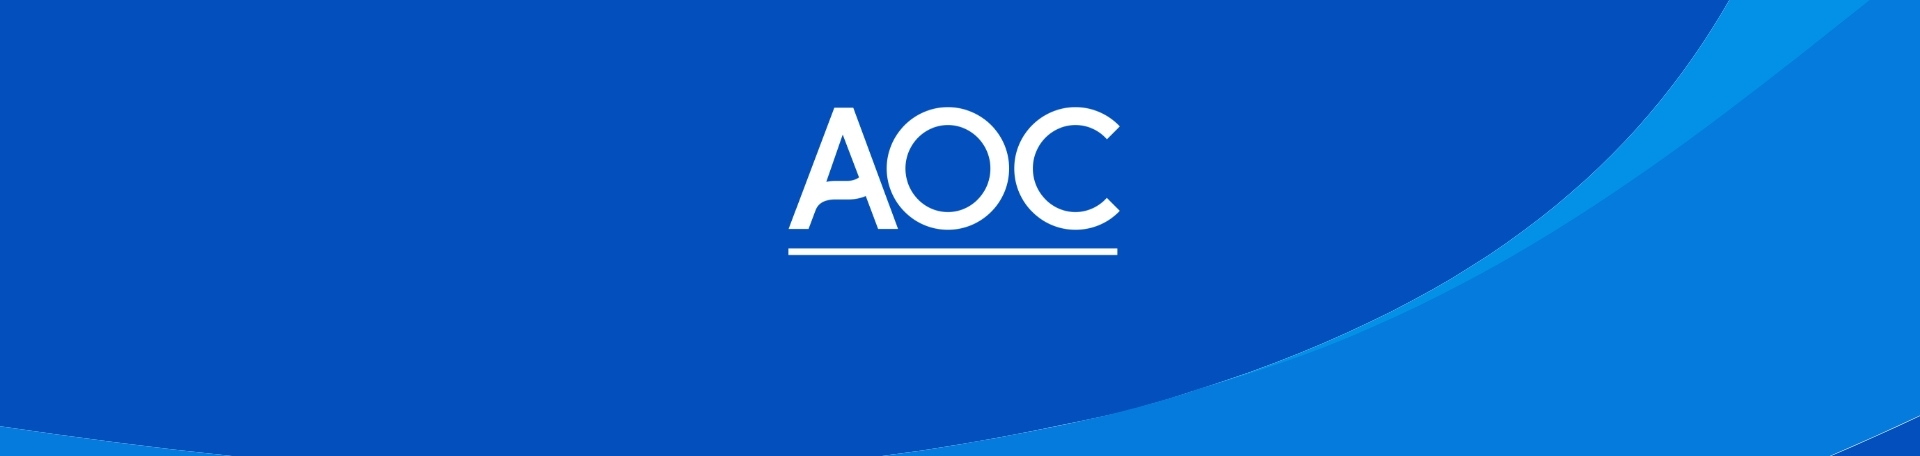 AOC wins top customer award